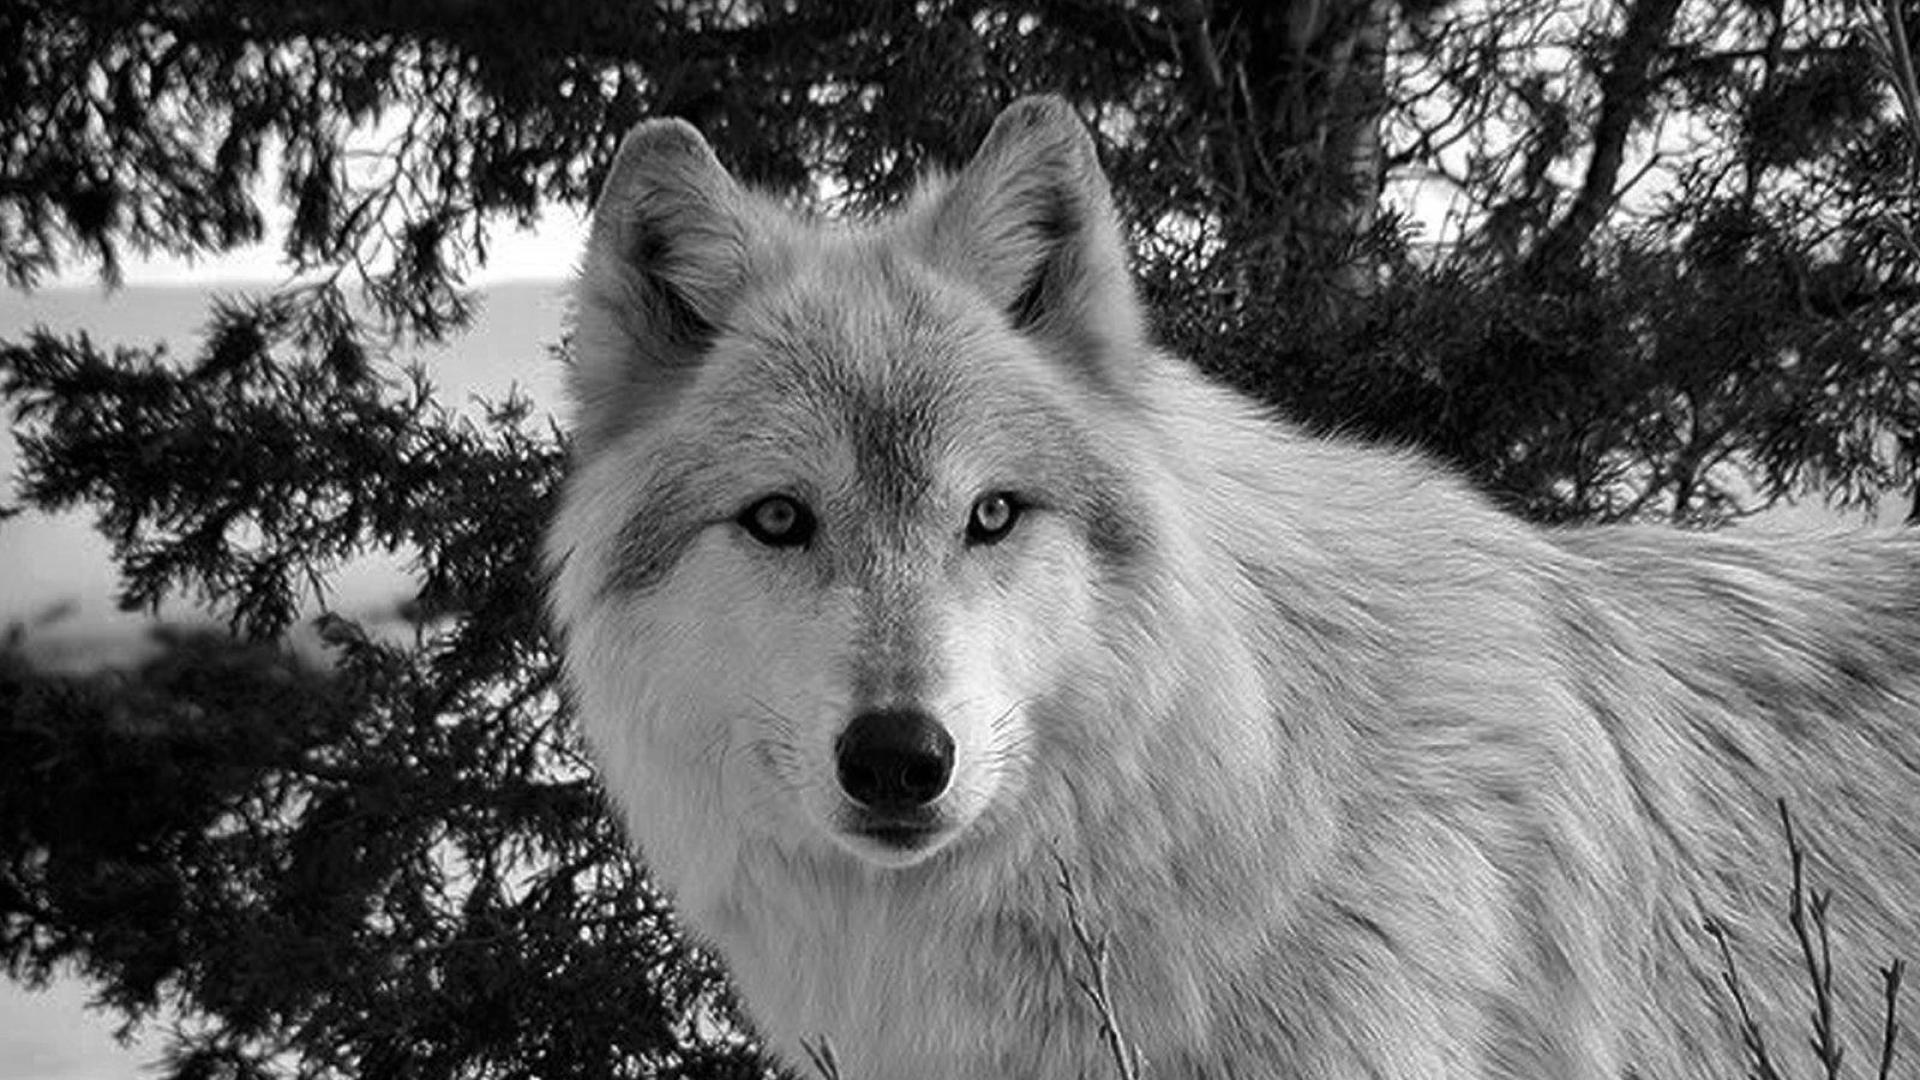 Black And White Wolf Wallpaper Wolf Black And White Wolf Hd 129992 Hd Wallpaper Backgrounds Download